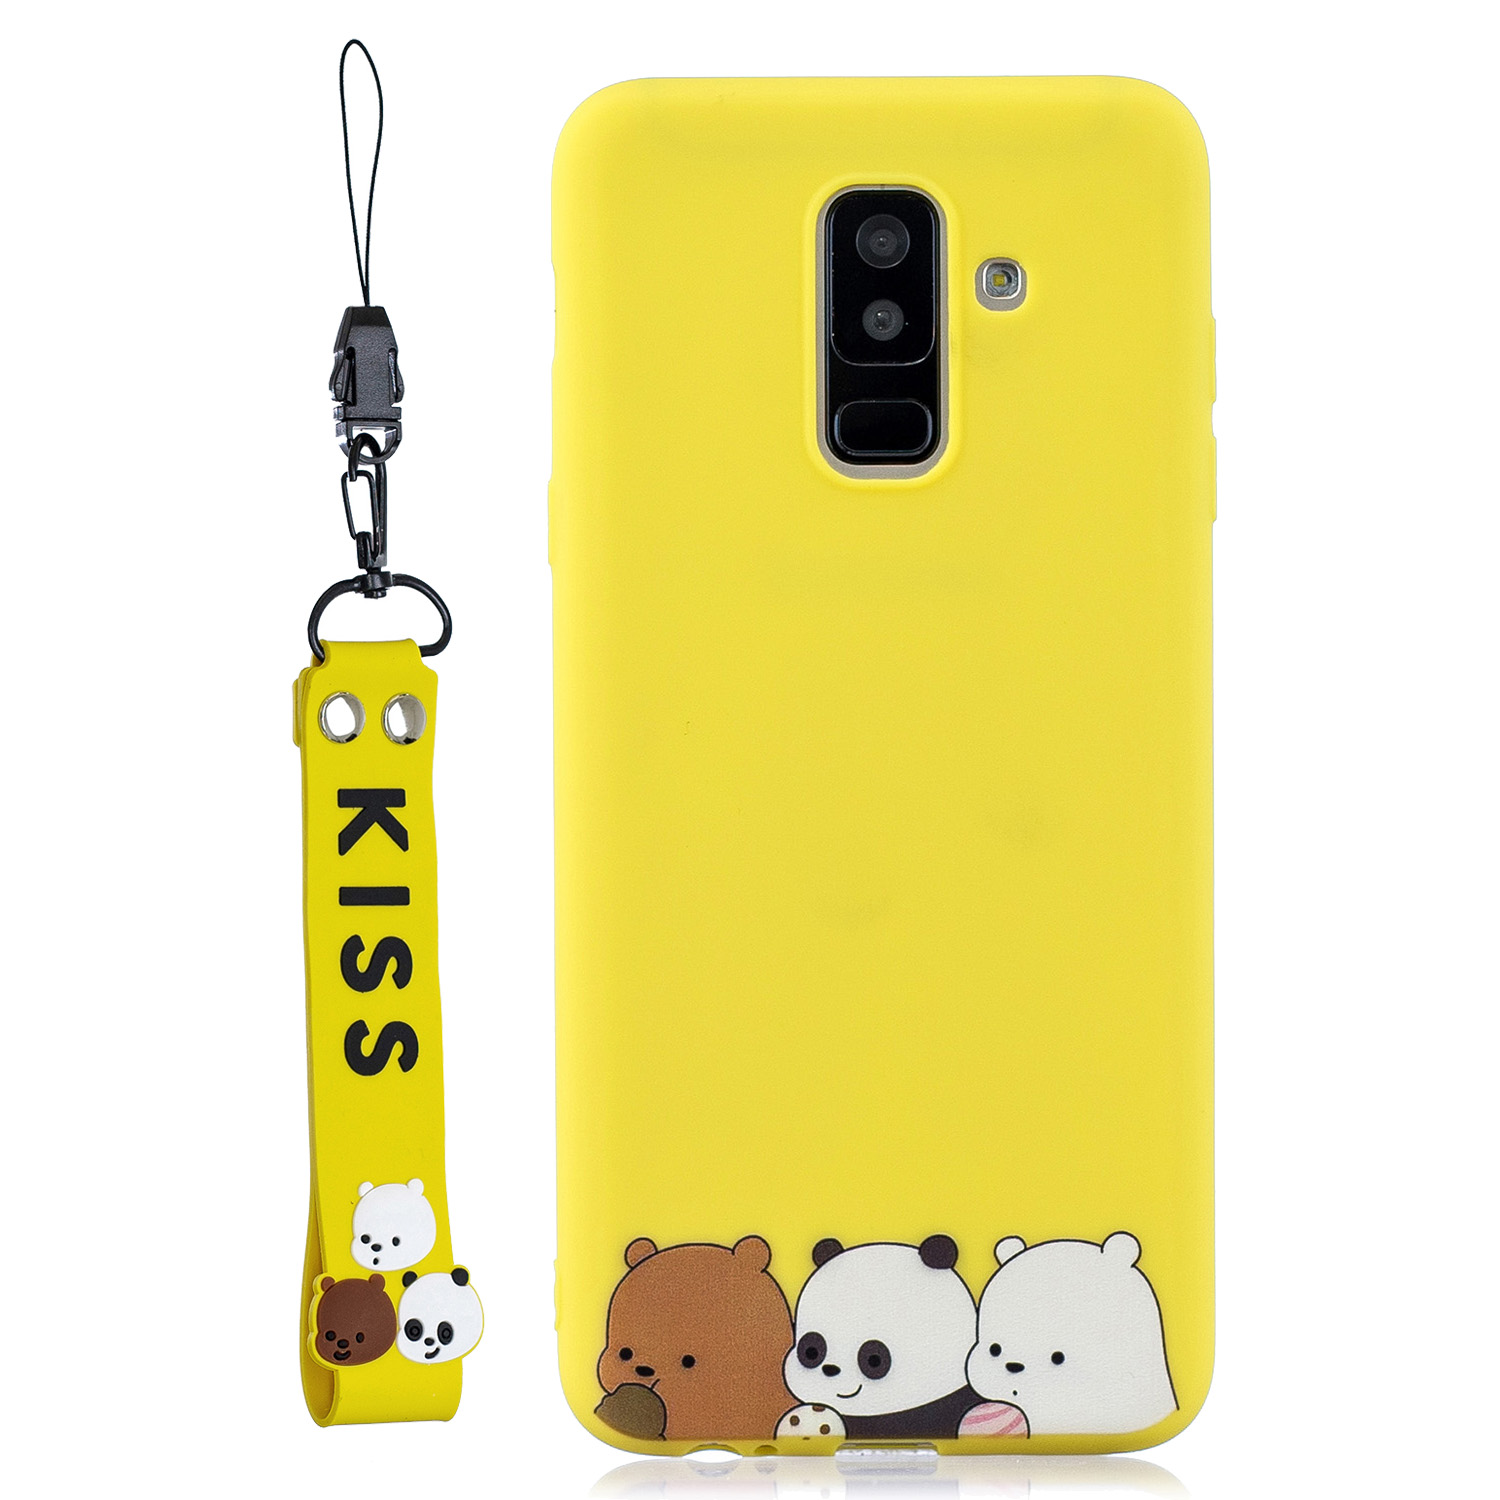 For Samsung A6 plus 2018 Cute Coloured Painted TPU Anti-scratch Non-slip Protective Cover Back Case with Lanyard yellow